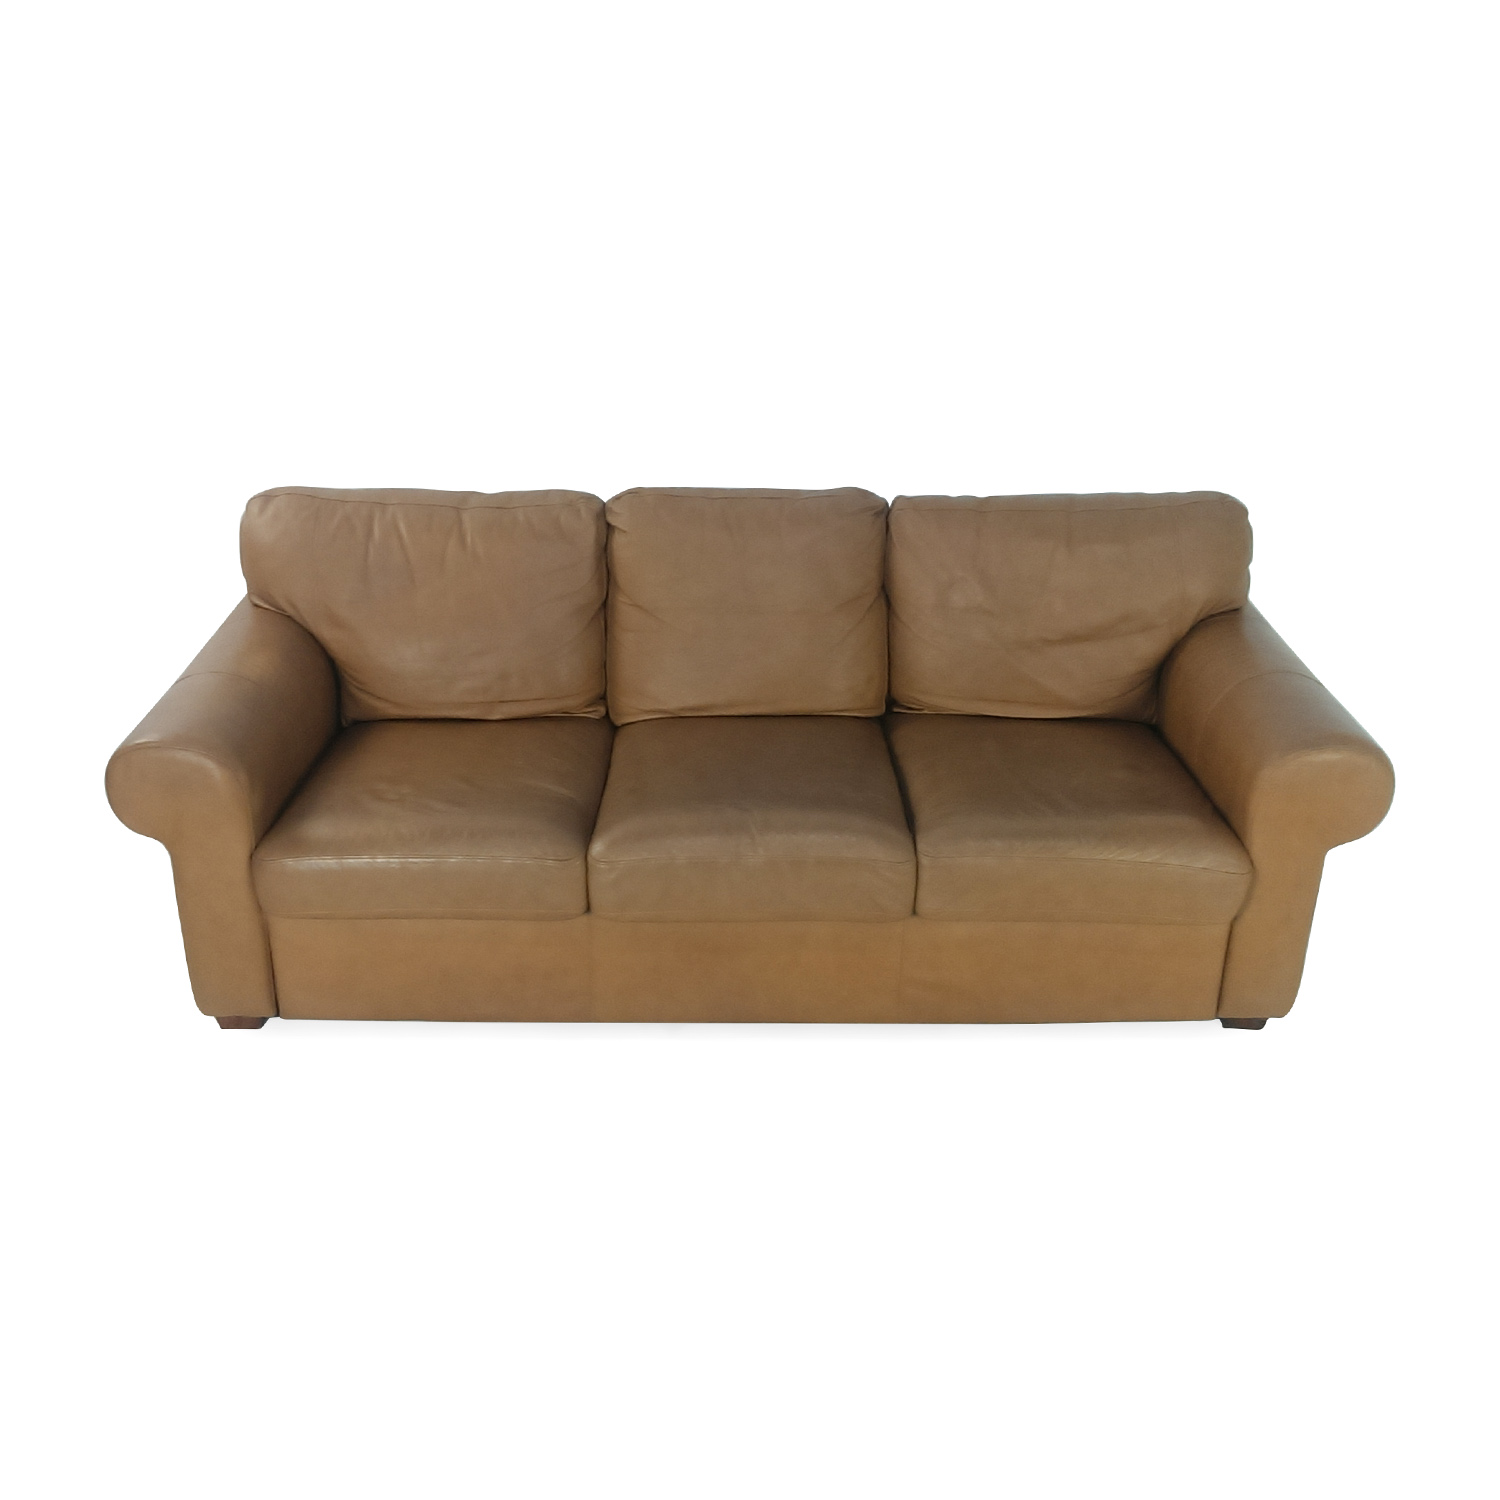 buy Crate and Barrel Leather Couch Crate and Barrel Classic Sofas